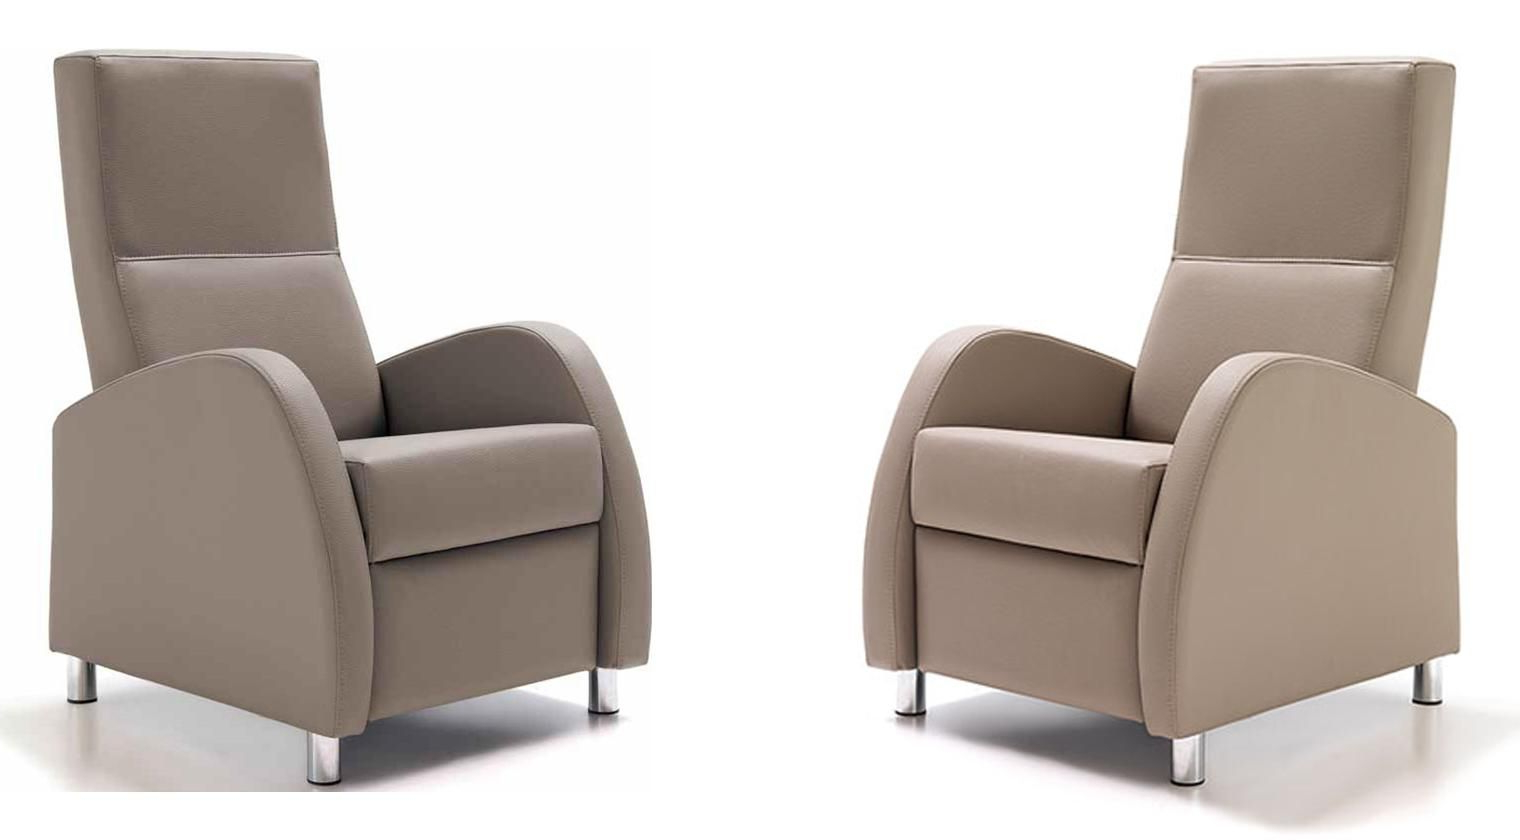 Sillones Abatibles Bqdd Sillà N Relax Style Llones Relax